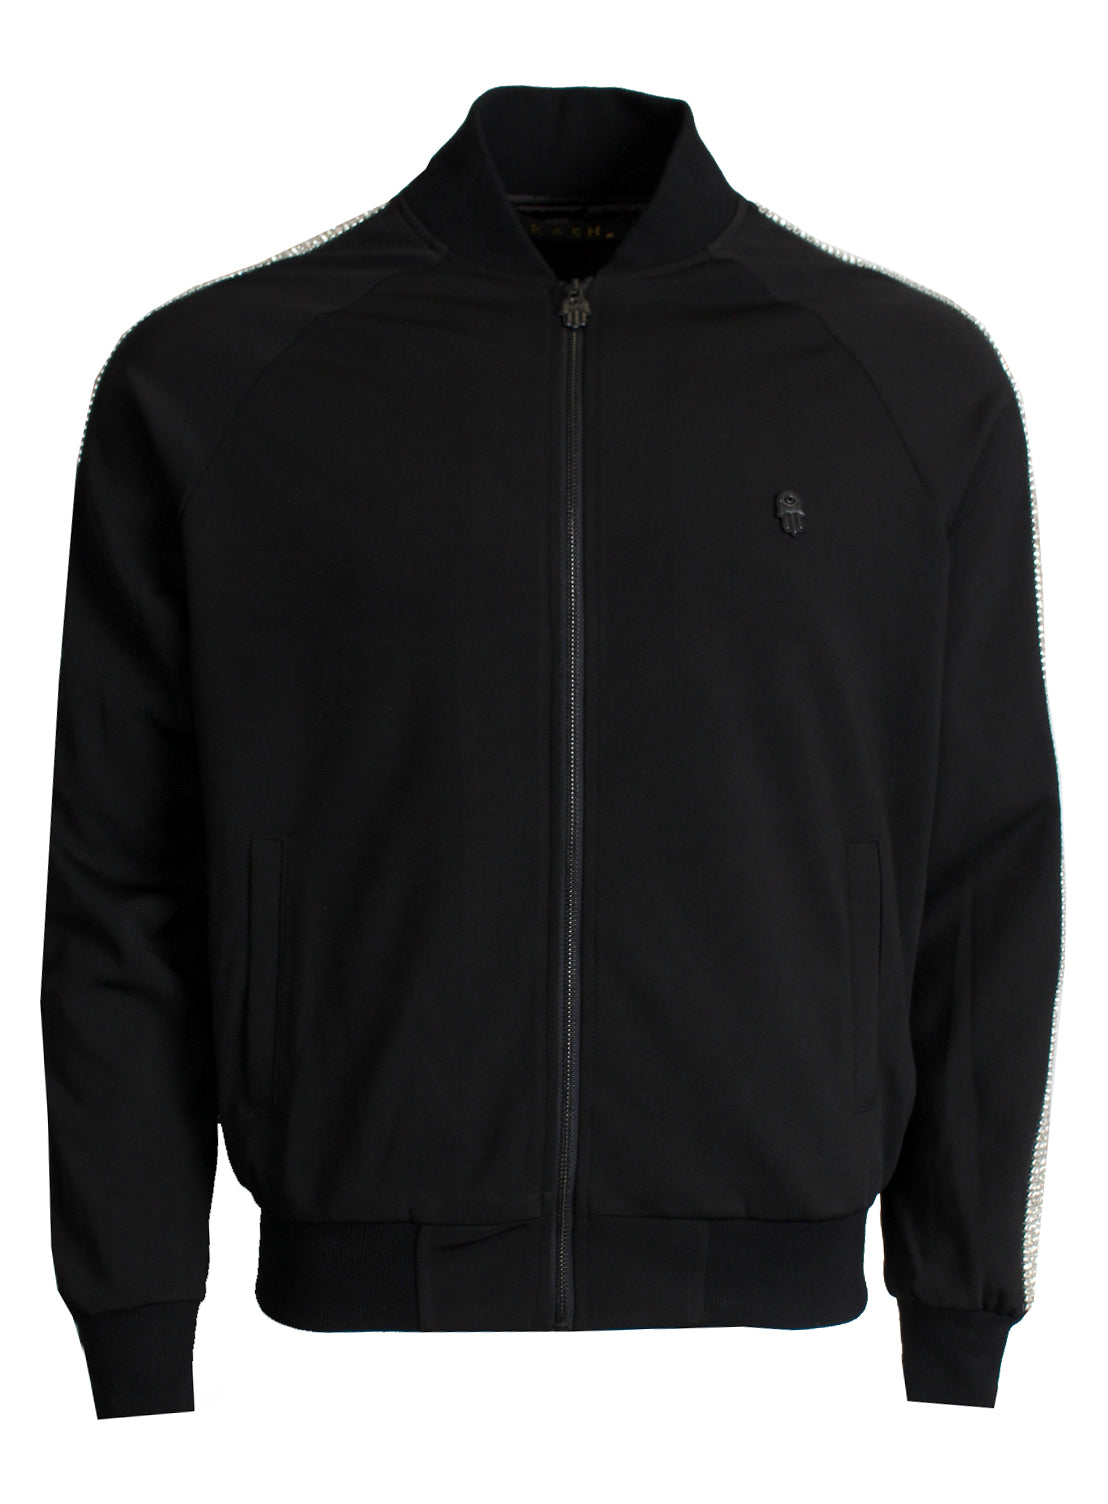 Men's Shine Collection Long Sleeve Jacket with Side Diamonds-Black